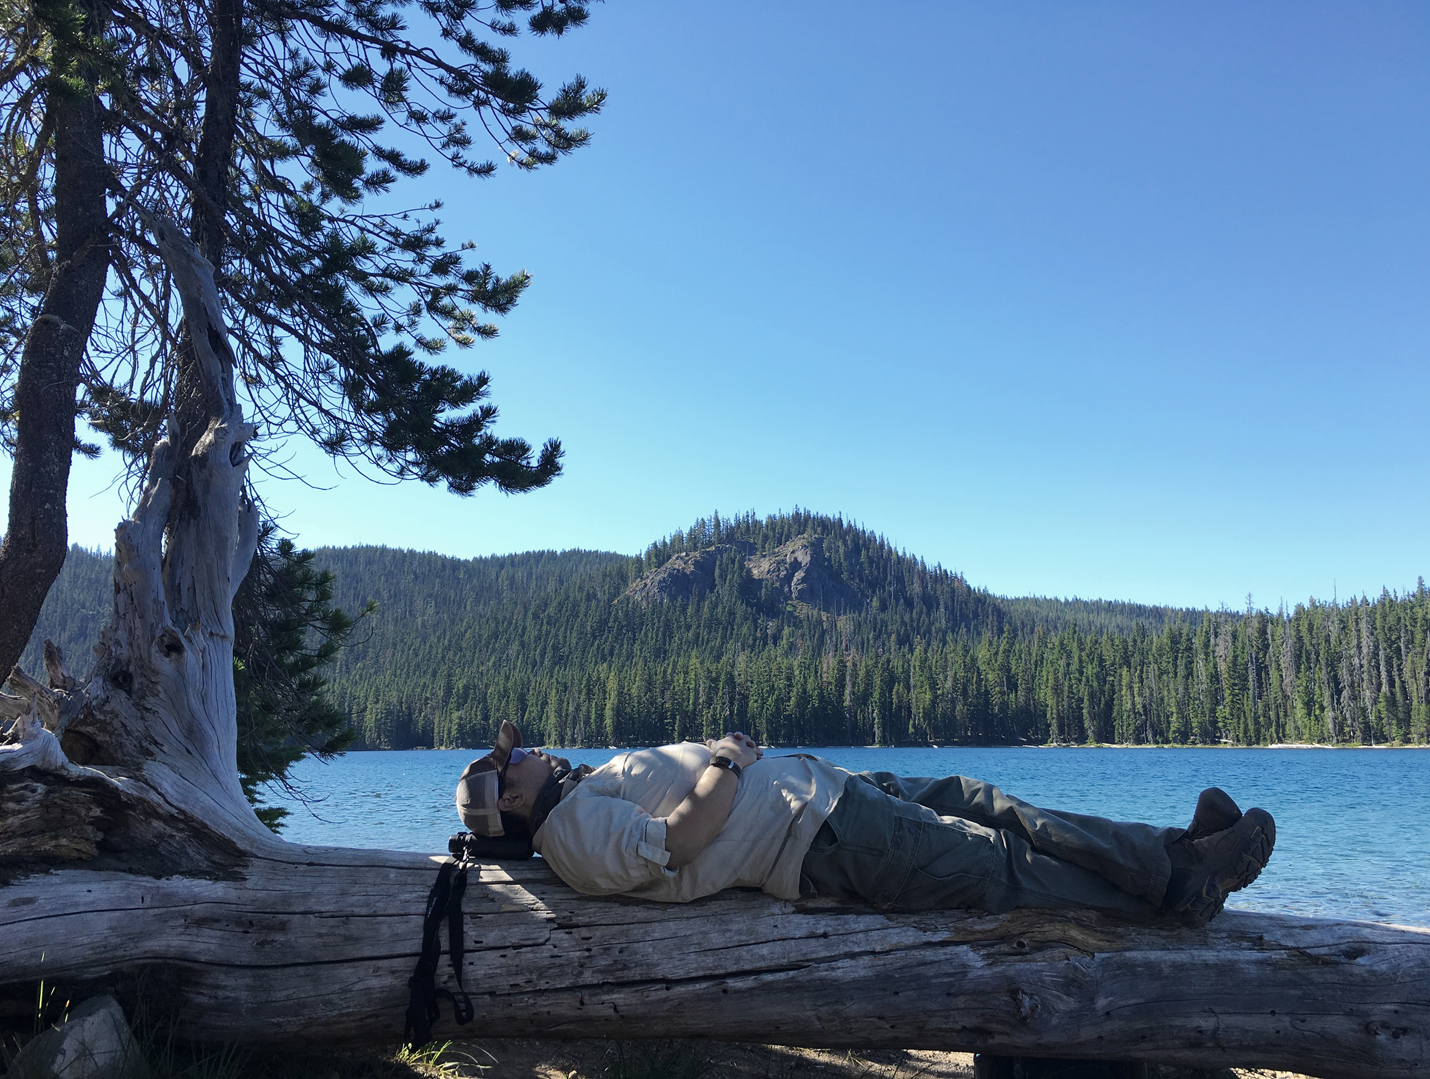 Central Oregon – Explorations from Big Pines RV Park